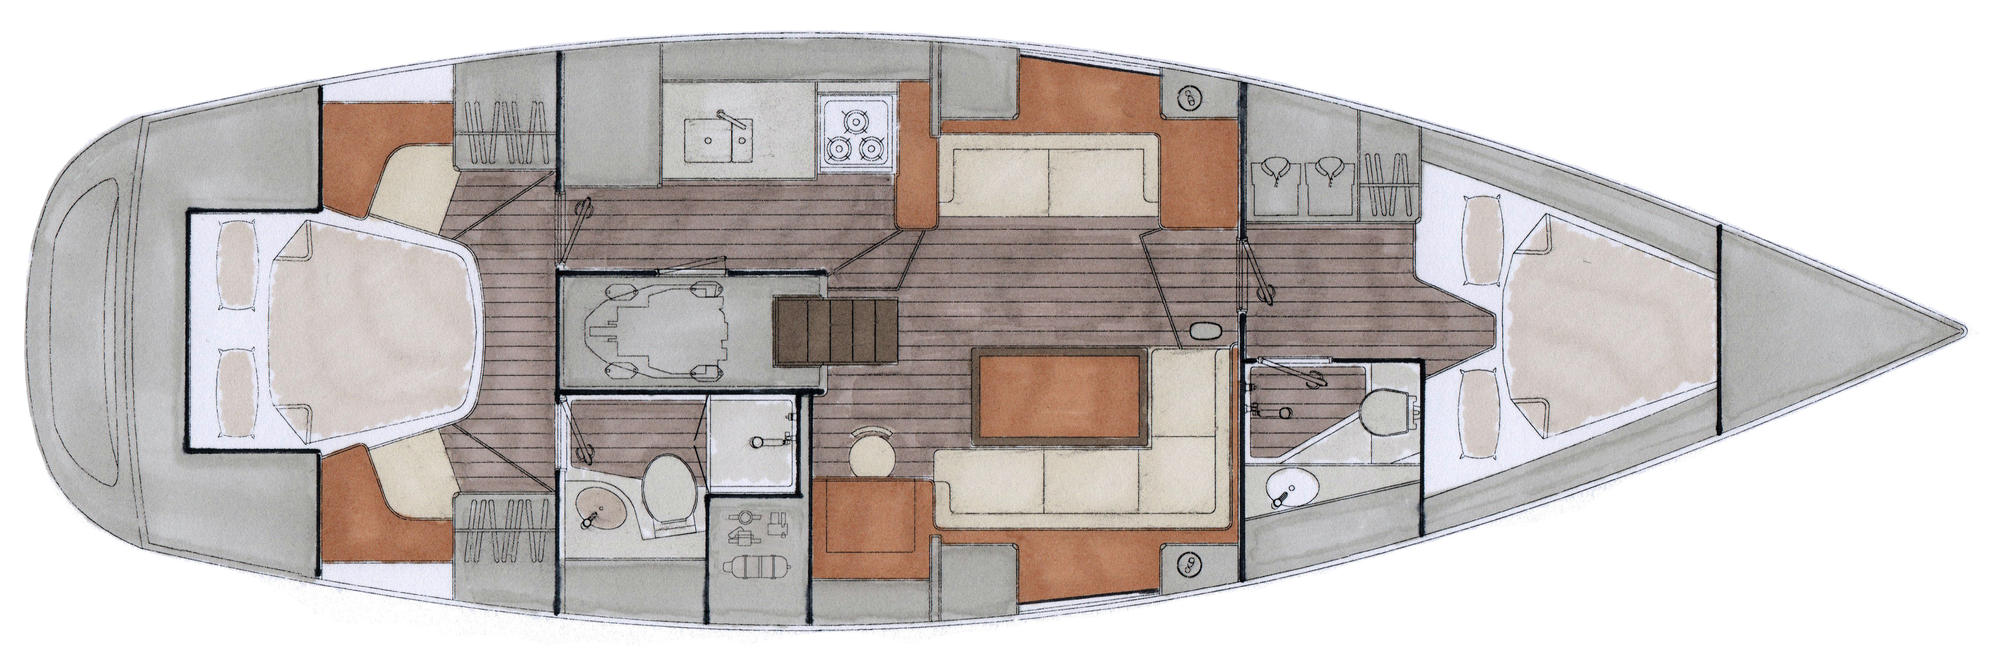 Conyplex Contest 45 CS - contest_45cs_interior_layout_a.jpg